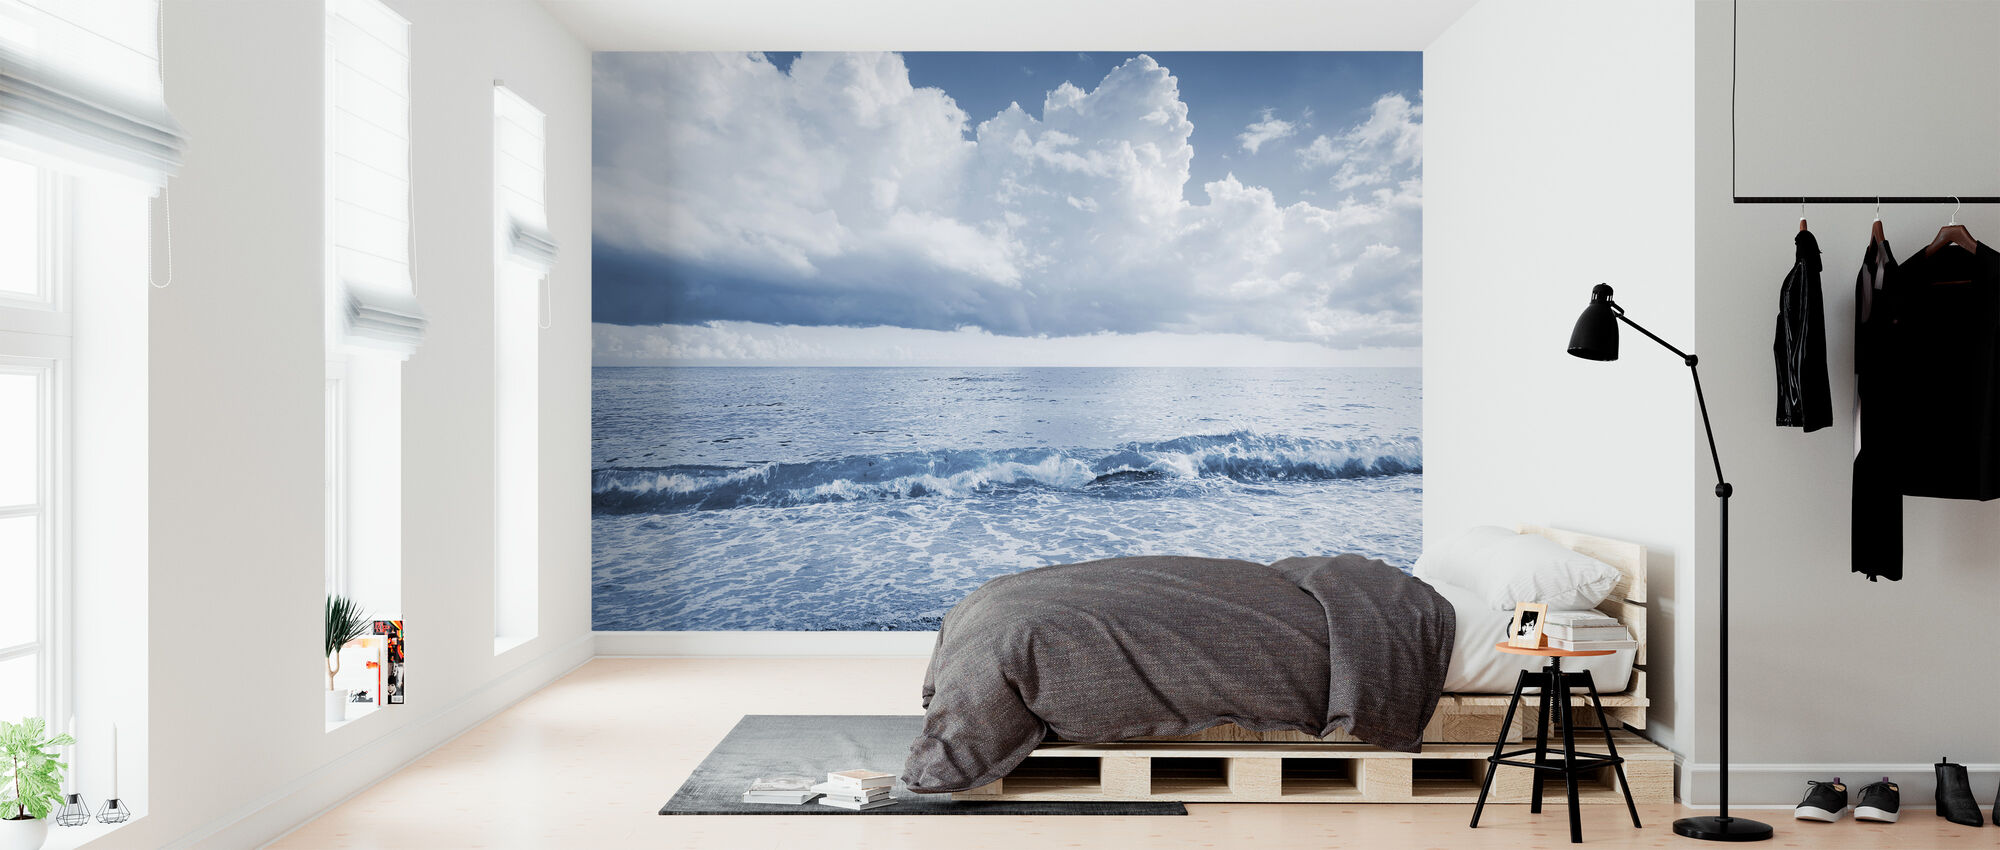 Sea and Dramatic Clouds - Wallpaper - Bedroom